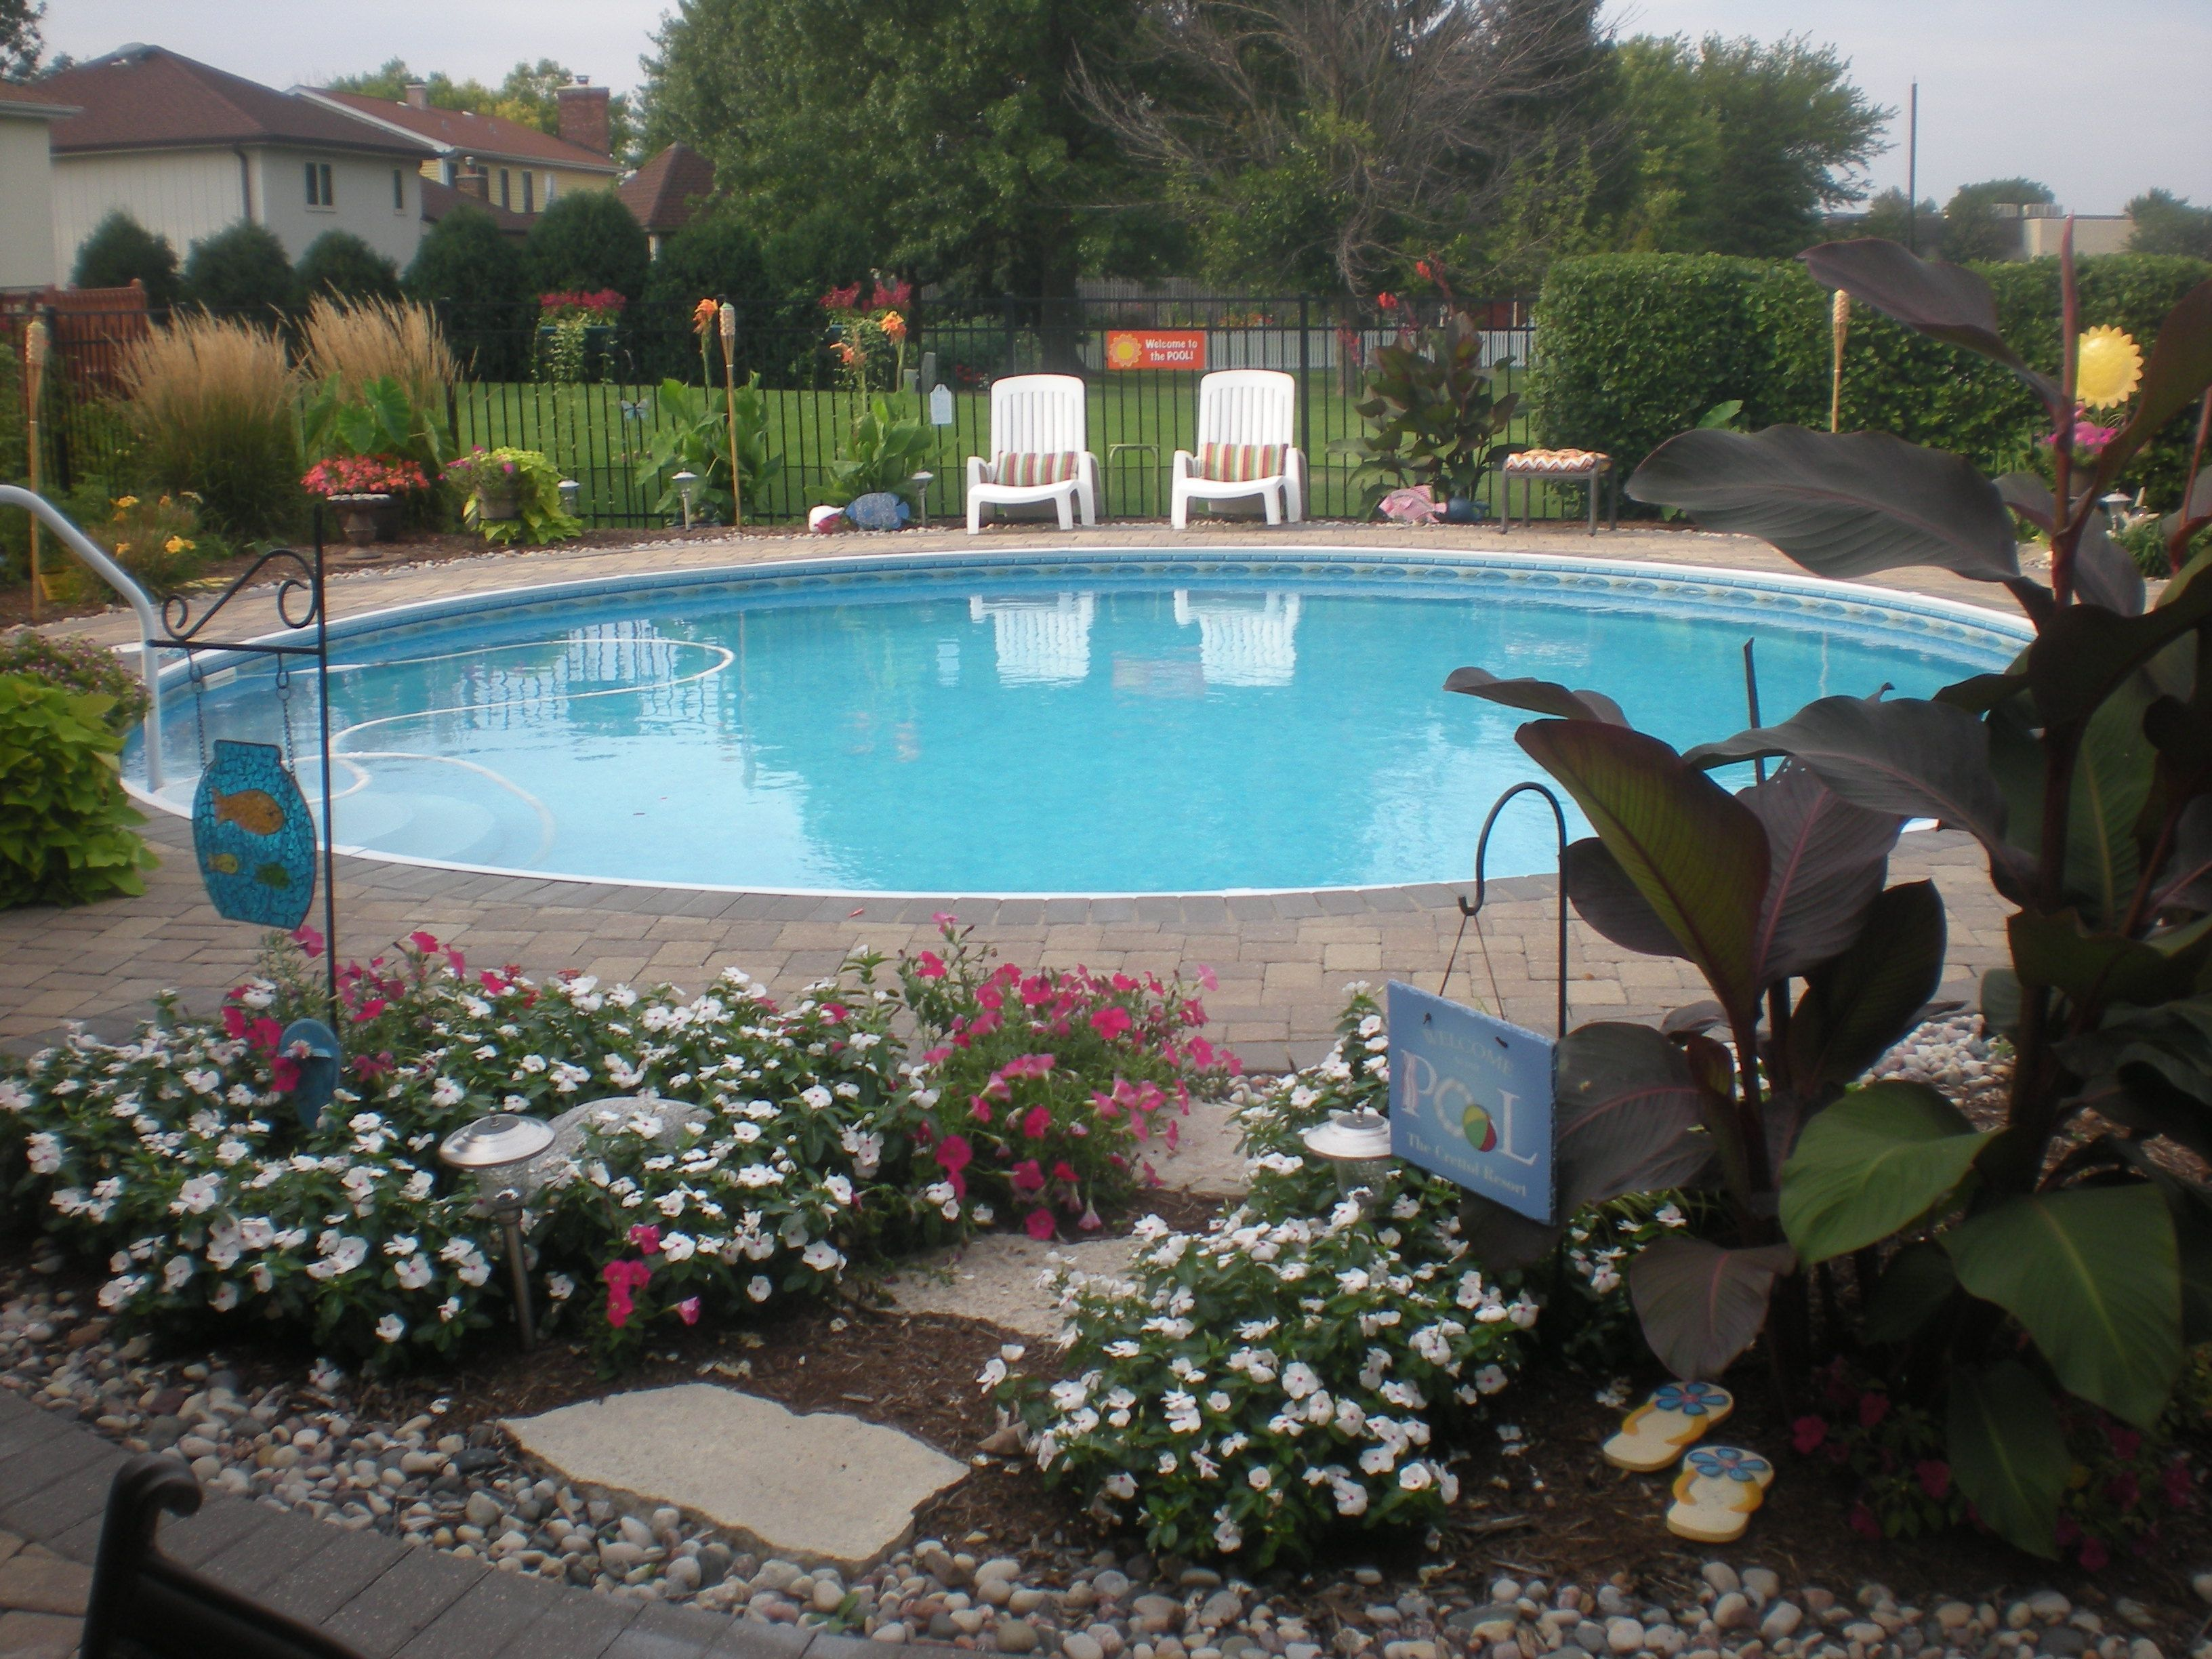 Fesselnde Eingebauter Pool Galerie Von Check Out This Beautiful Backyard Retreat With